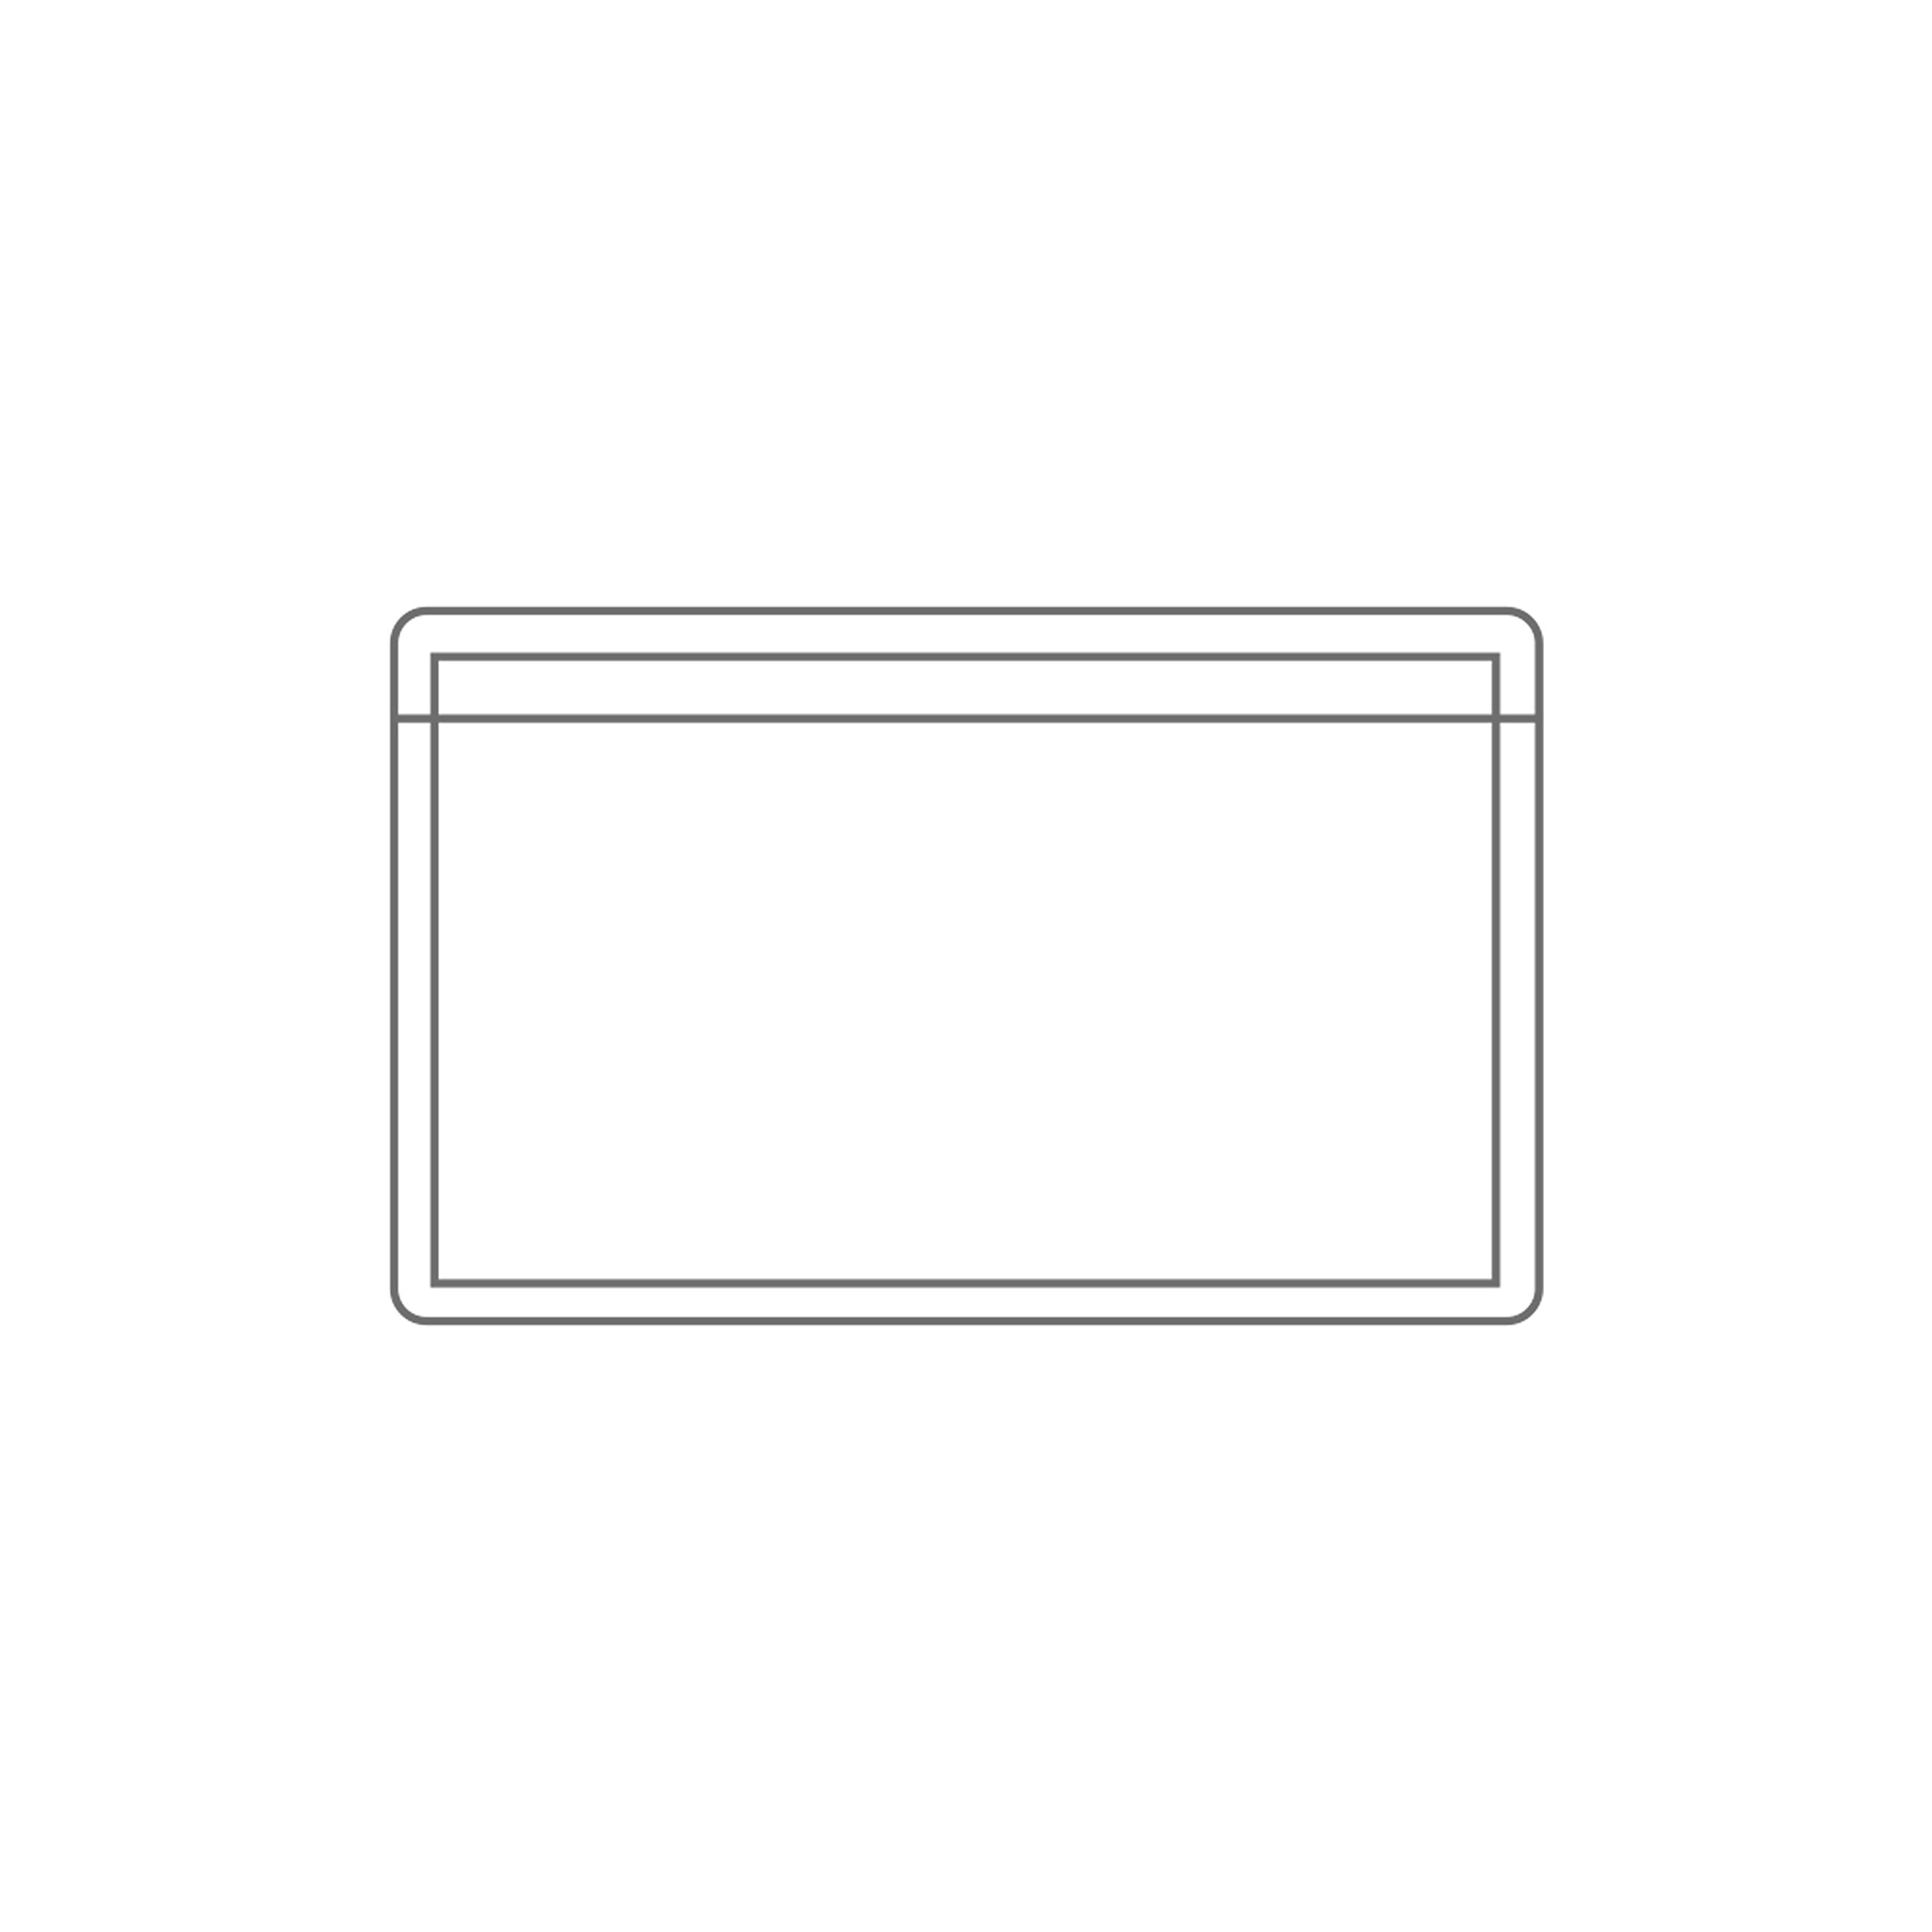 PackZen Clear Top Loading Adhesive Business Card Sleeve/Pocket (Long Side Open) - Pack of 100 - Made in The USA